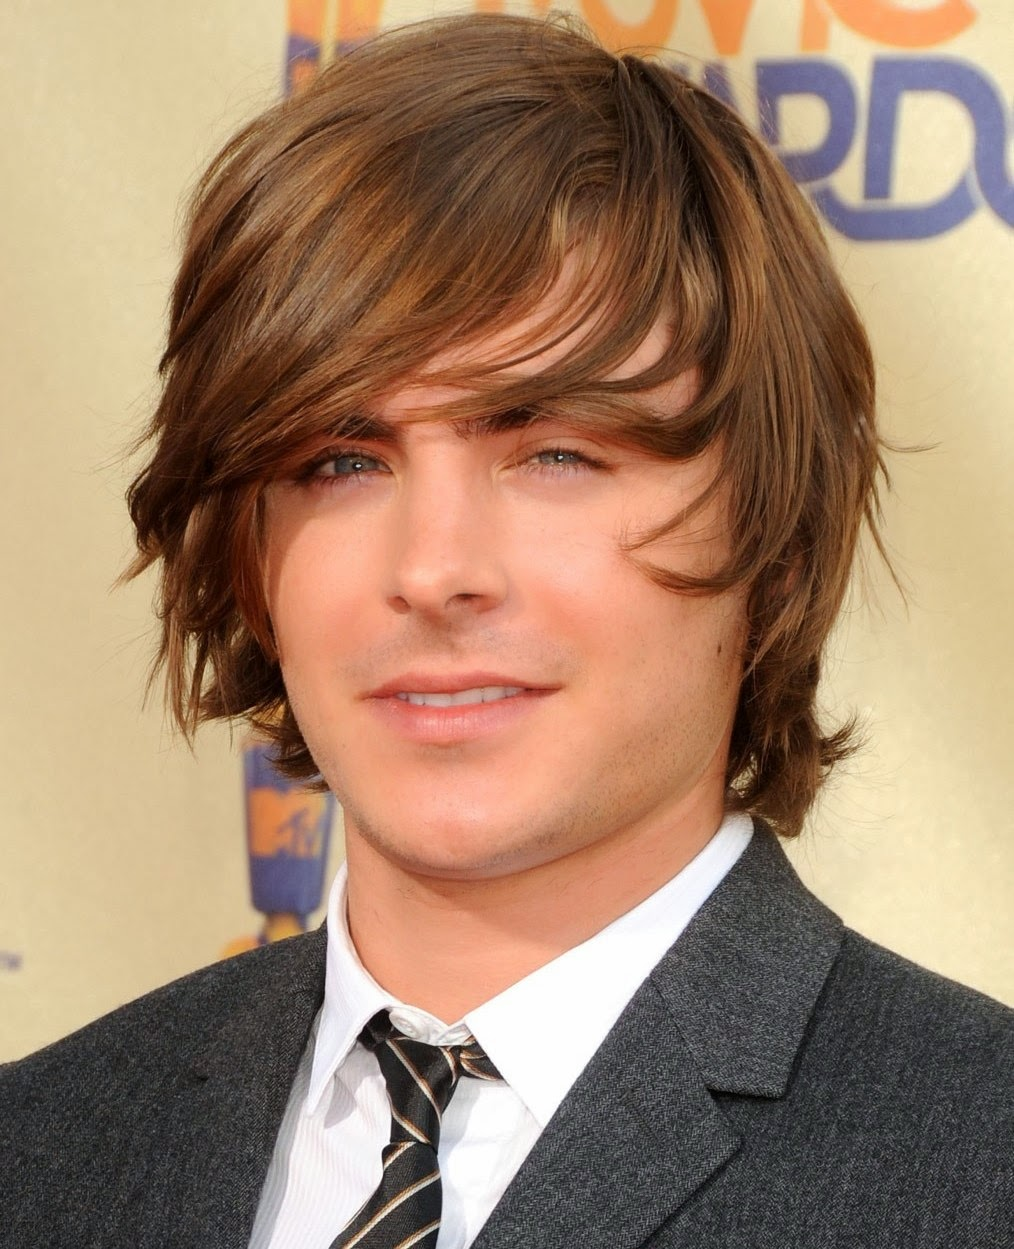 27+ Beautiful Long Hairstyle Name For Man Images | Hair style